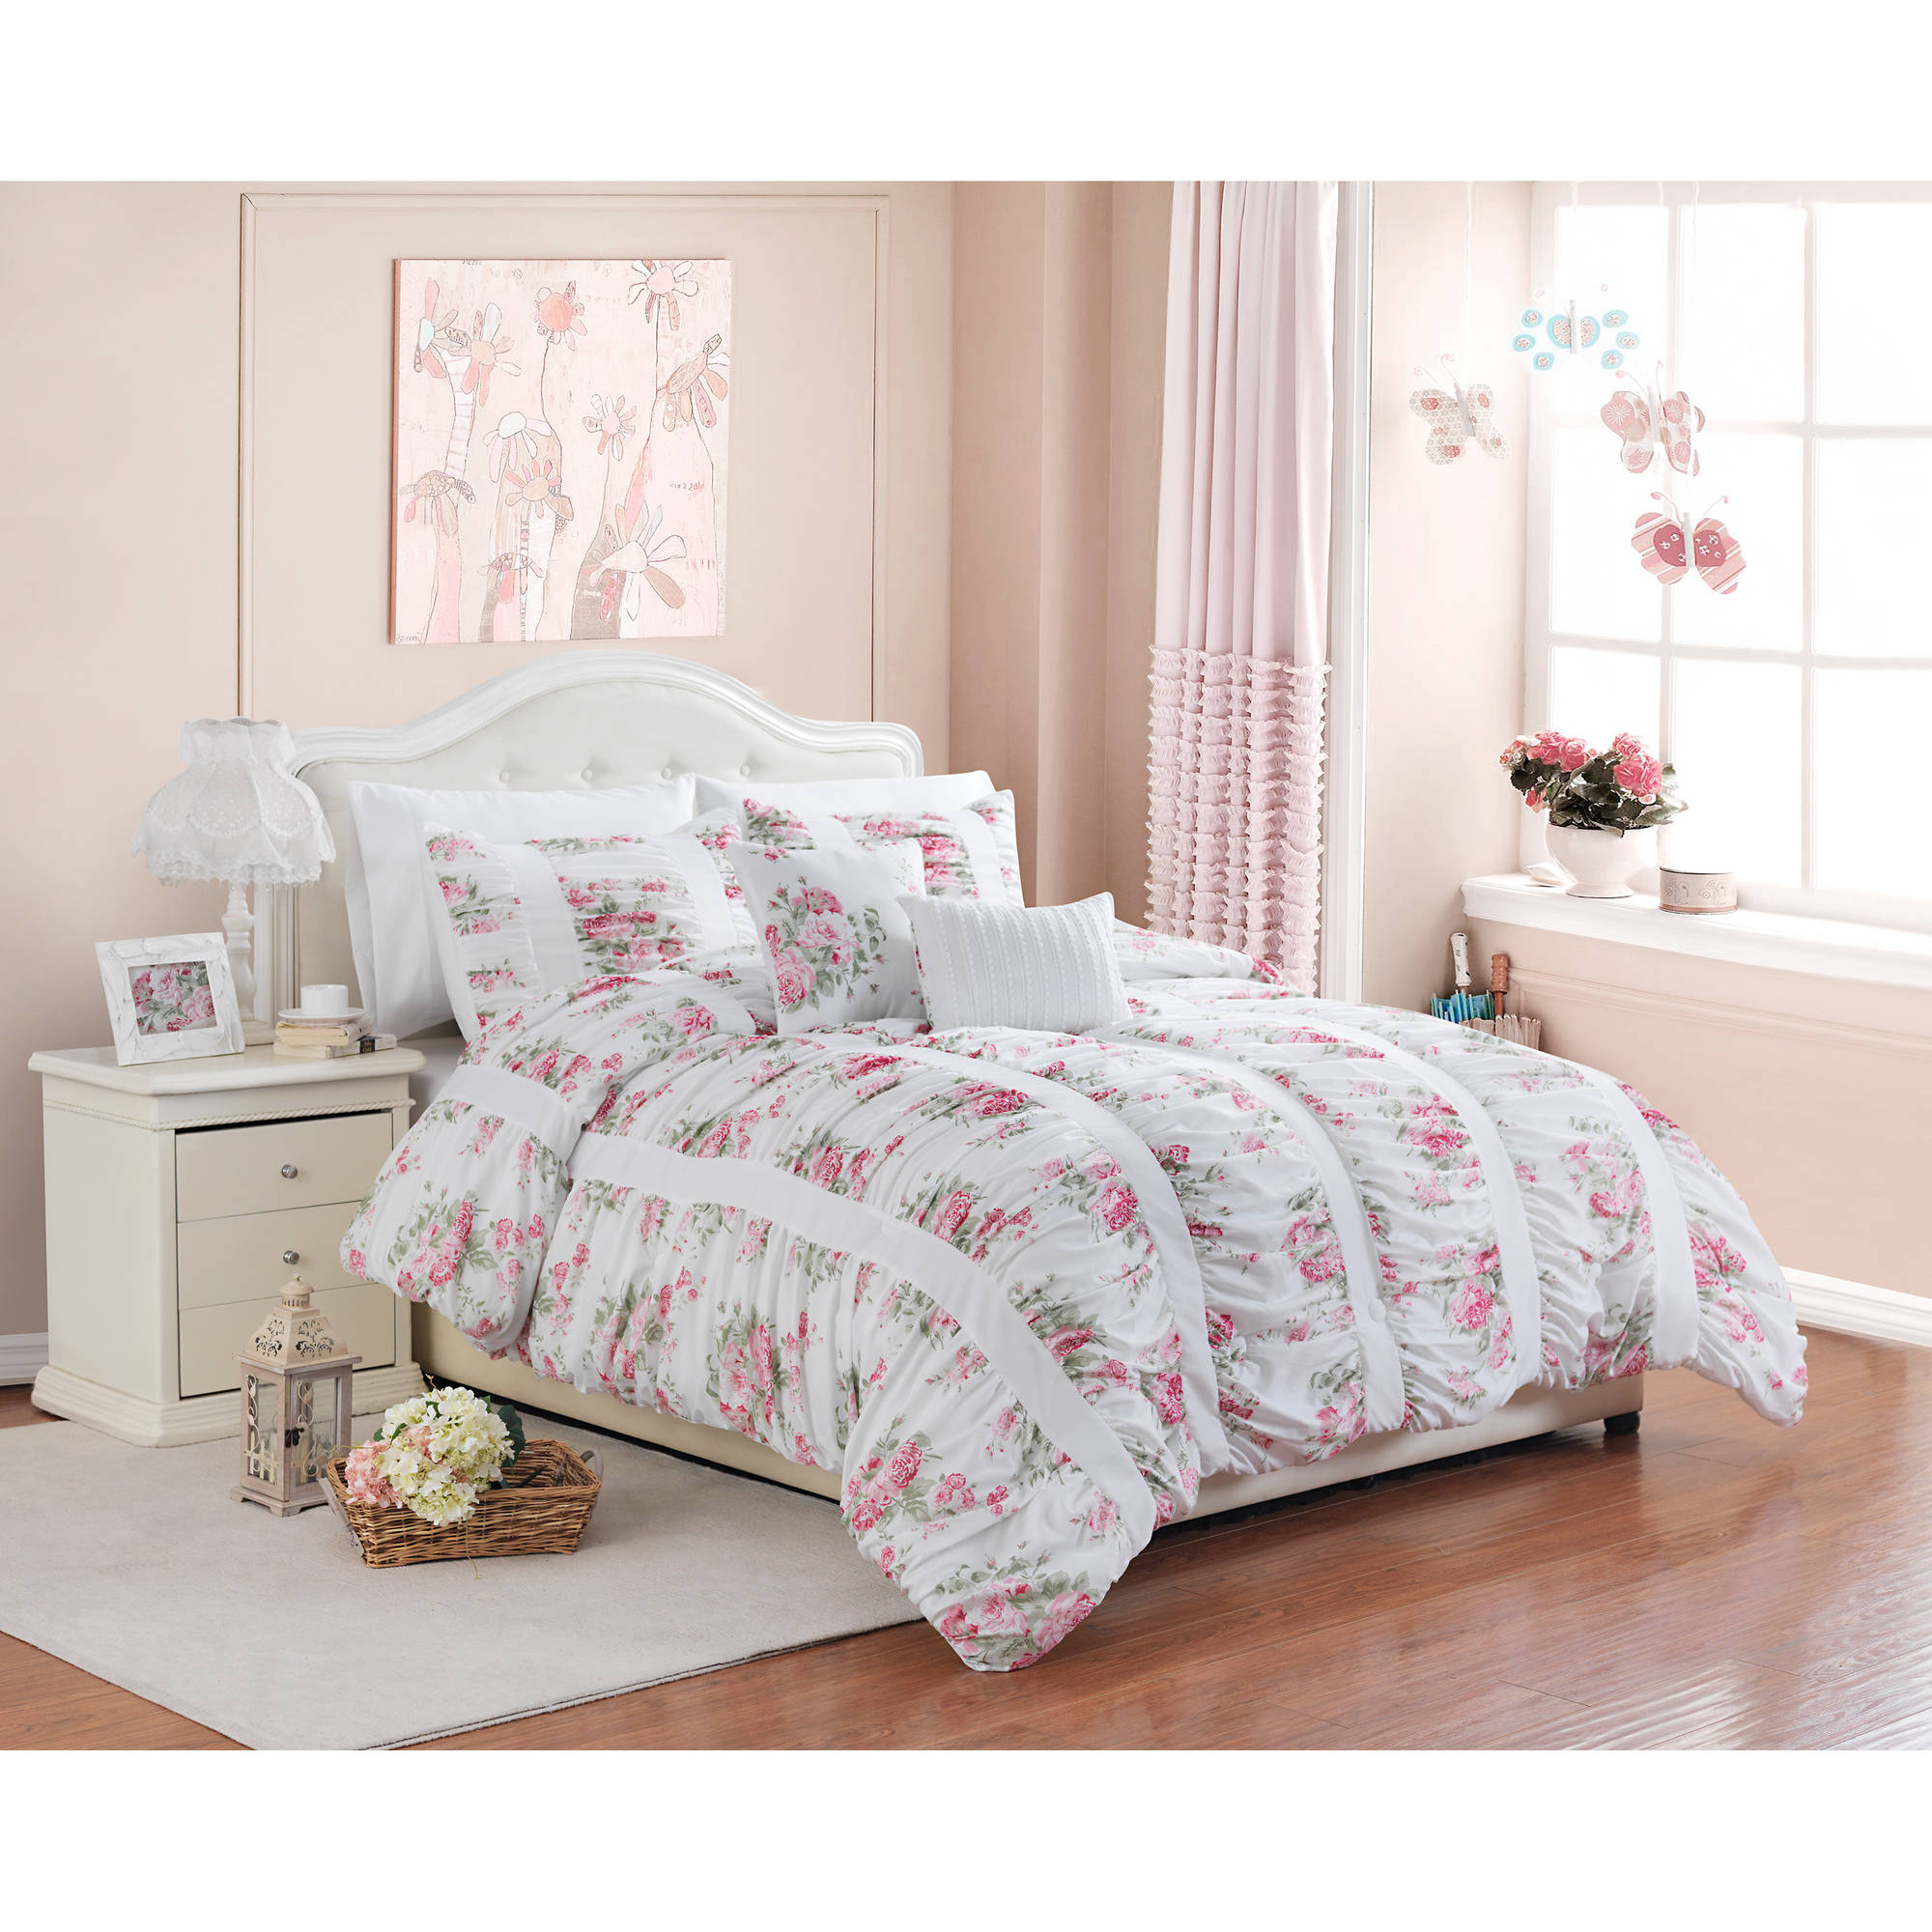 Nice Better Homes And Gardens 5 Piece Floral Ruching Bedding Comforter Set